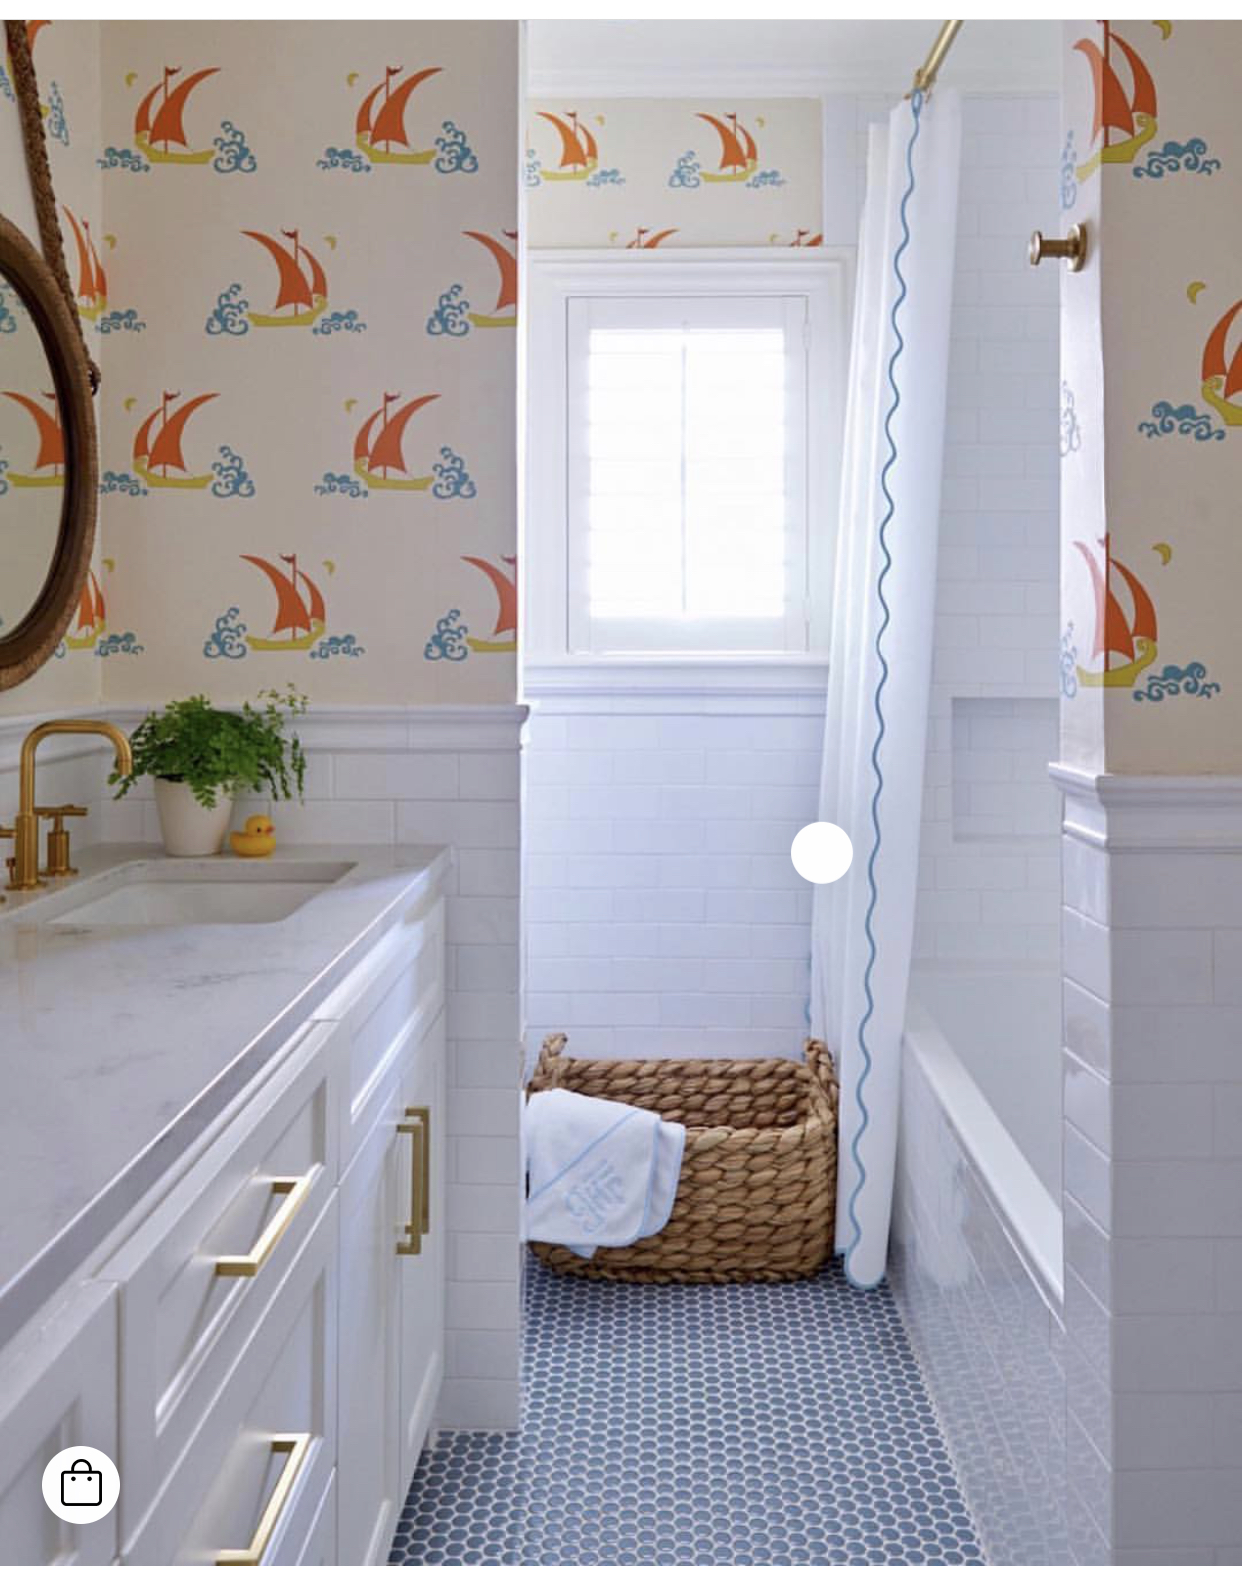 *Kids bath inspiration: Love the penny tile and brass accents. And that fun wallpaper!